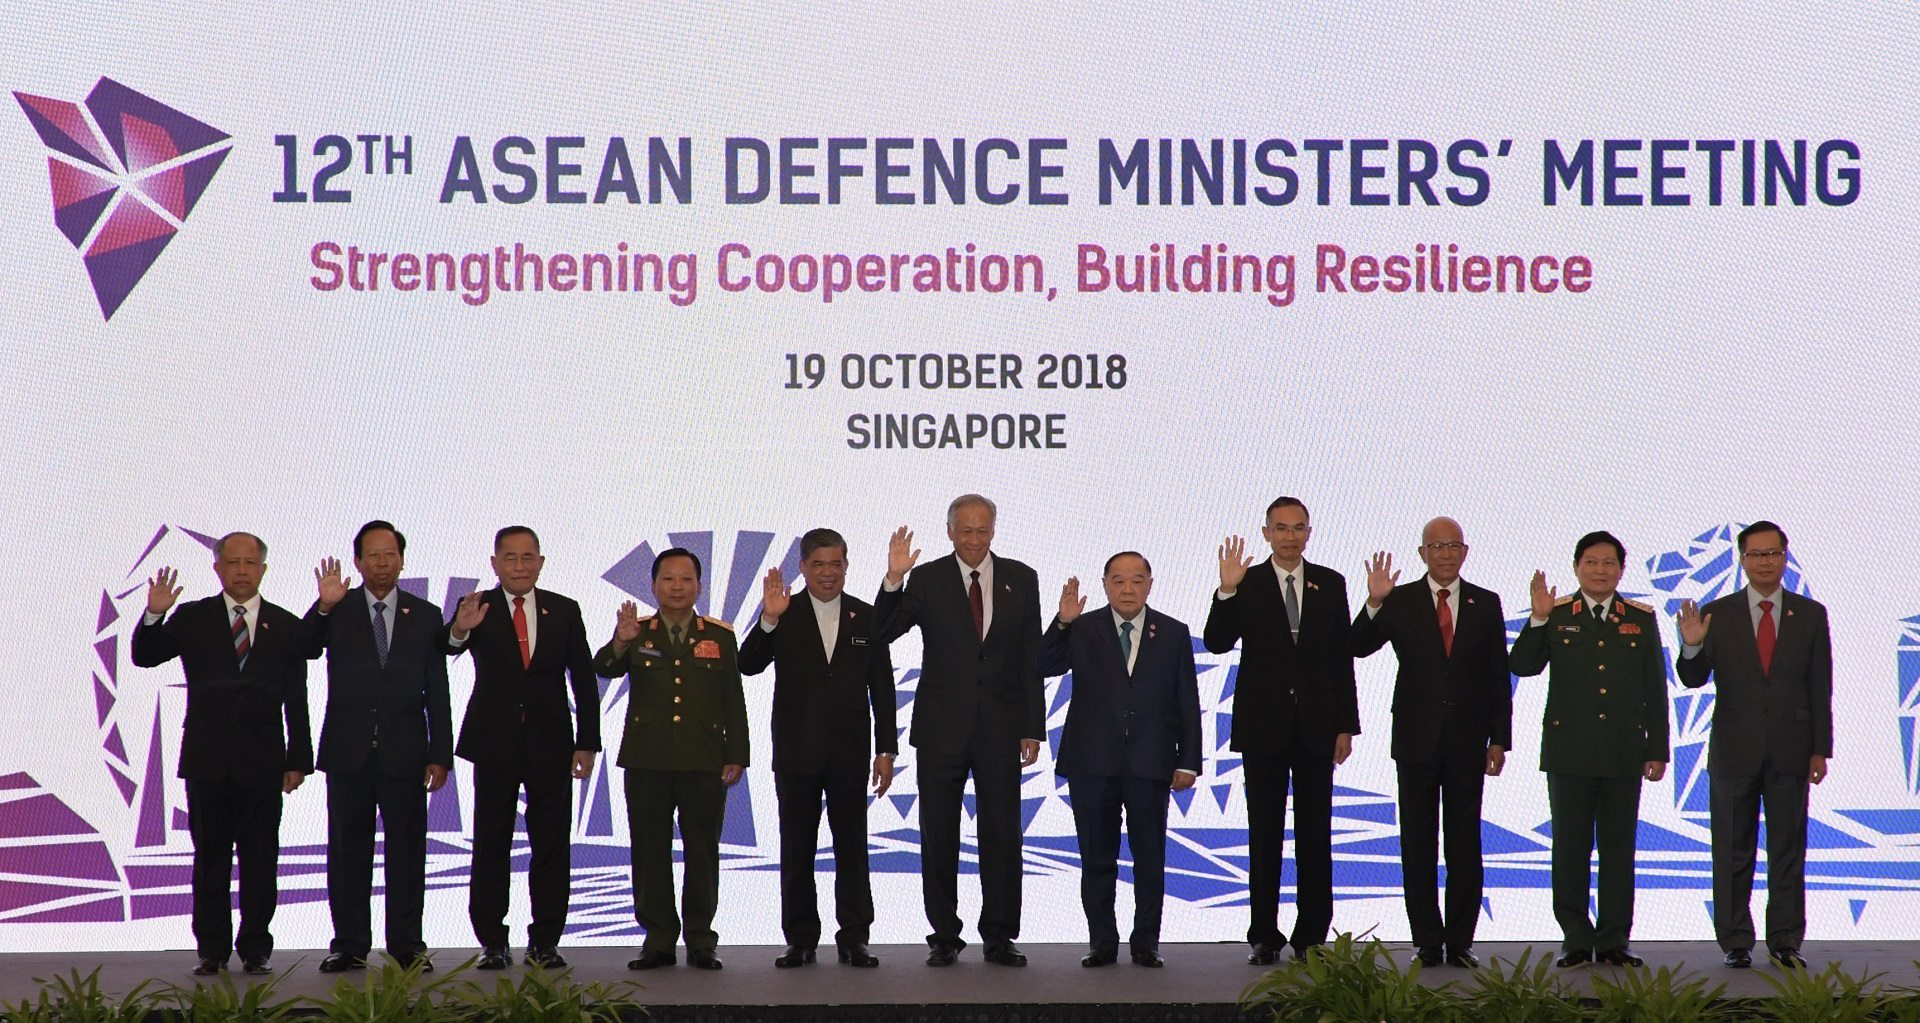 ASEAN Defence Ministers Ink Agreement on Guidelines for Air Encounters, Counter-Terrorism Cooperation